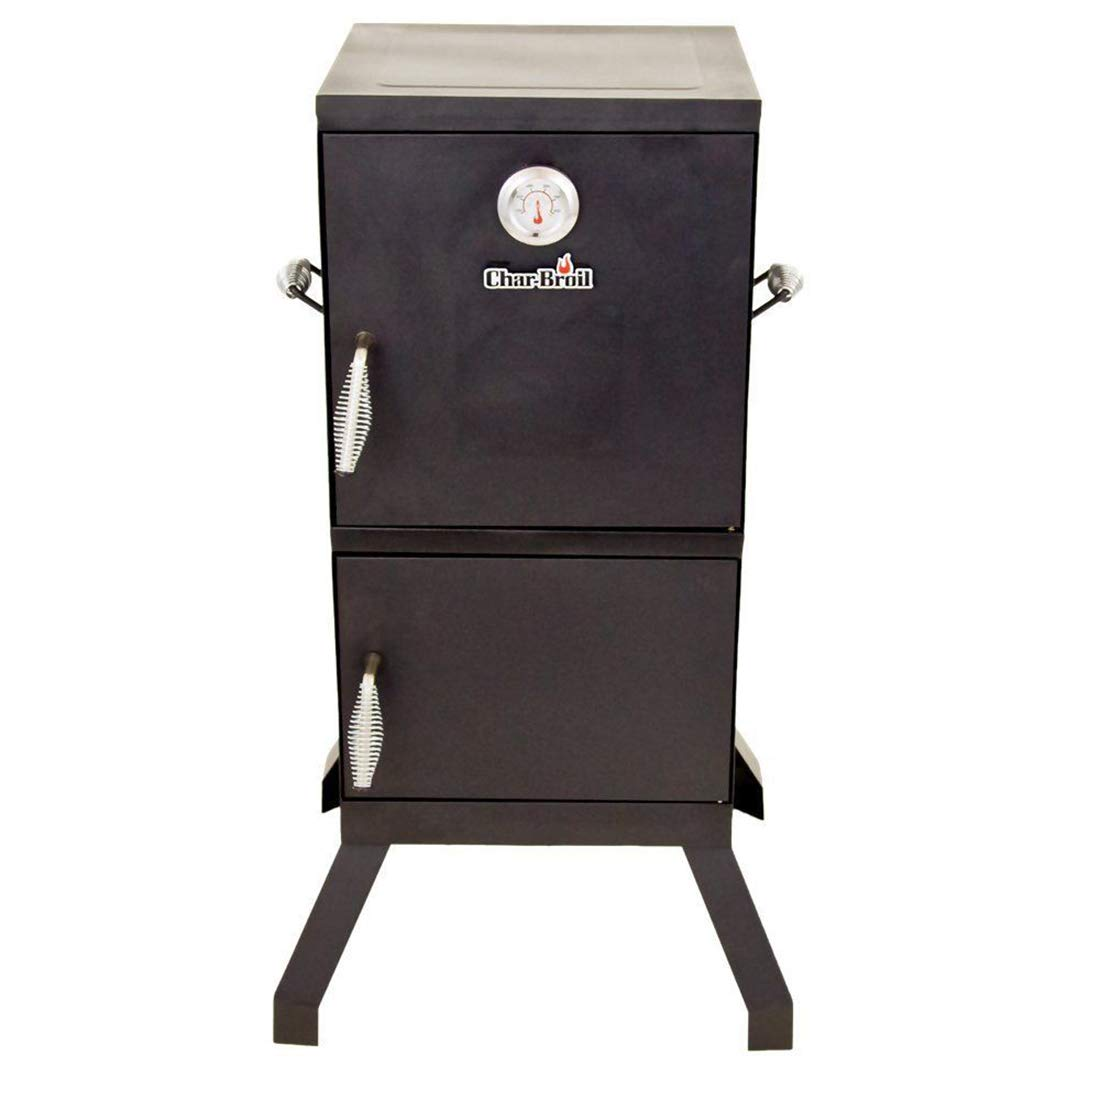 FossExpress New Grill Cooker [Vertical Steel Chamber 21.5 x 20.8 x 39 inches] - Charcoal Smoker - Work Great for BBQ Cooking - Outdoor, Patio Backyard - Black by FossExpress (Image #2)